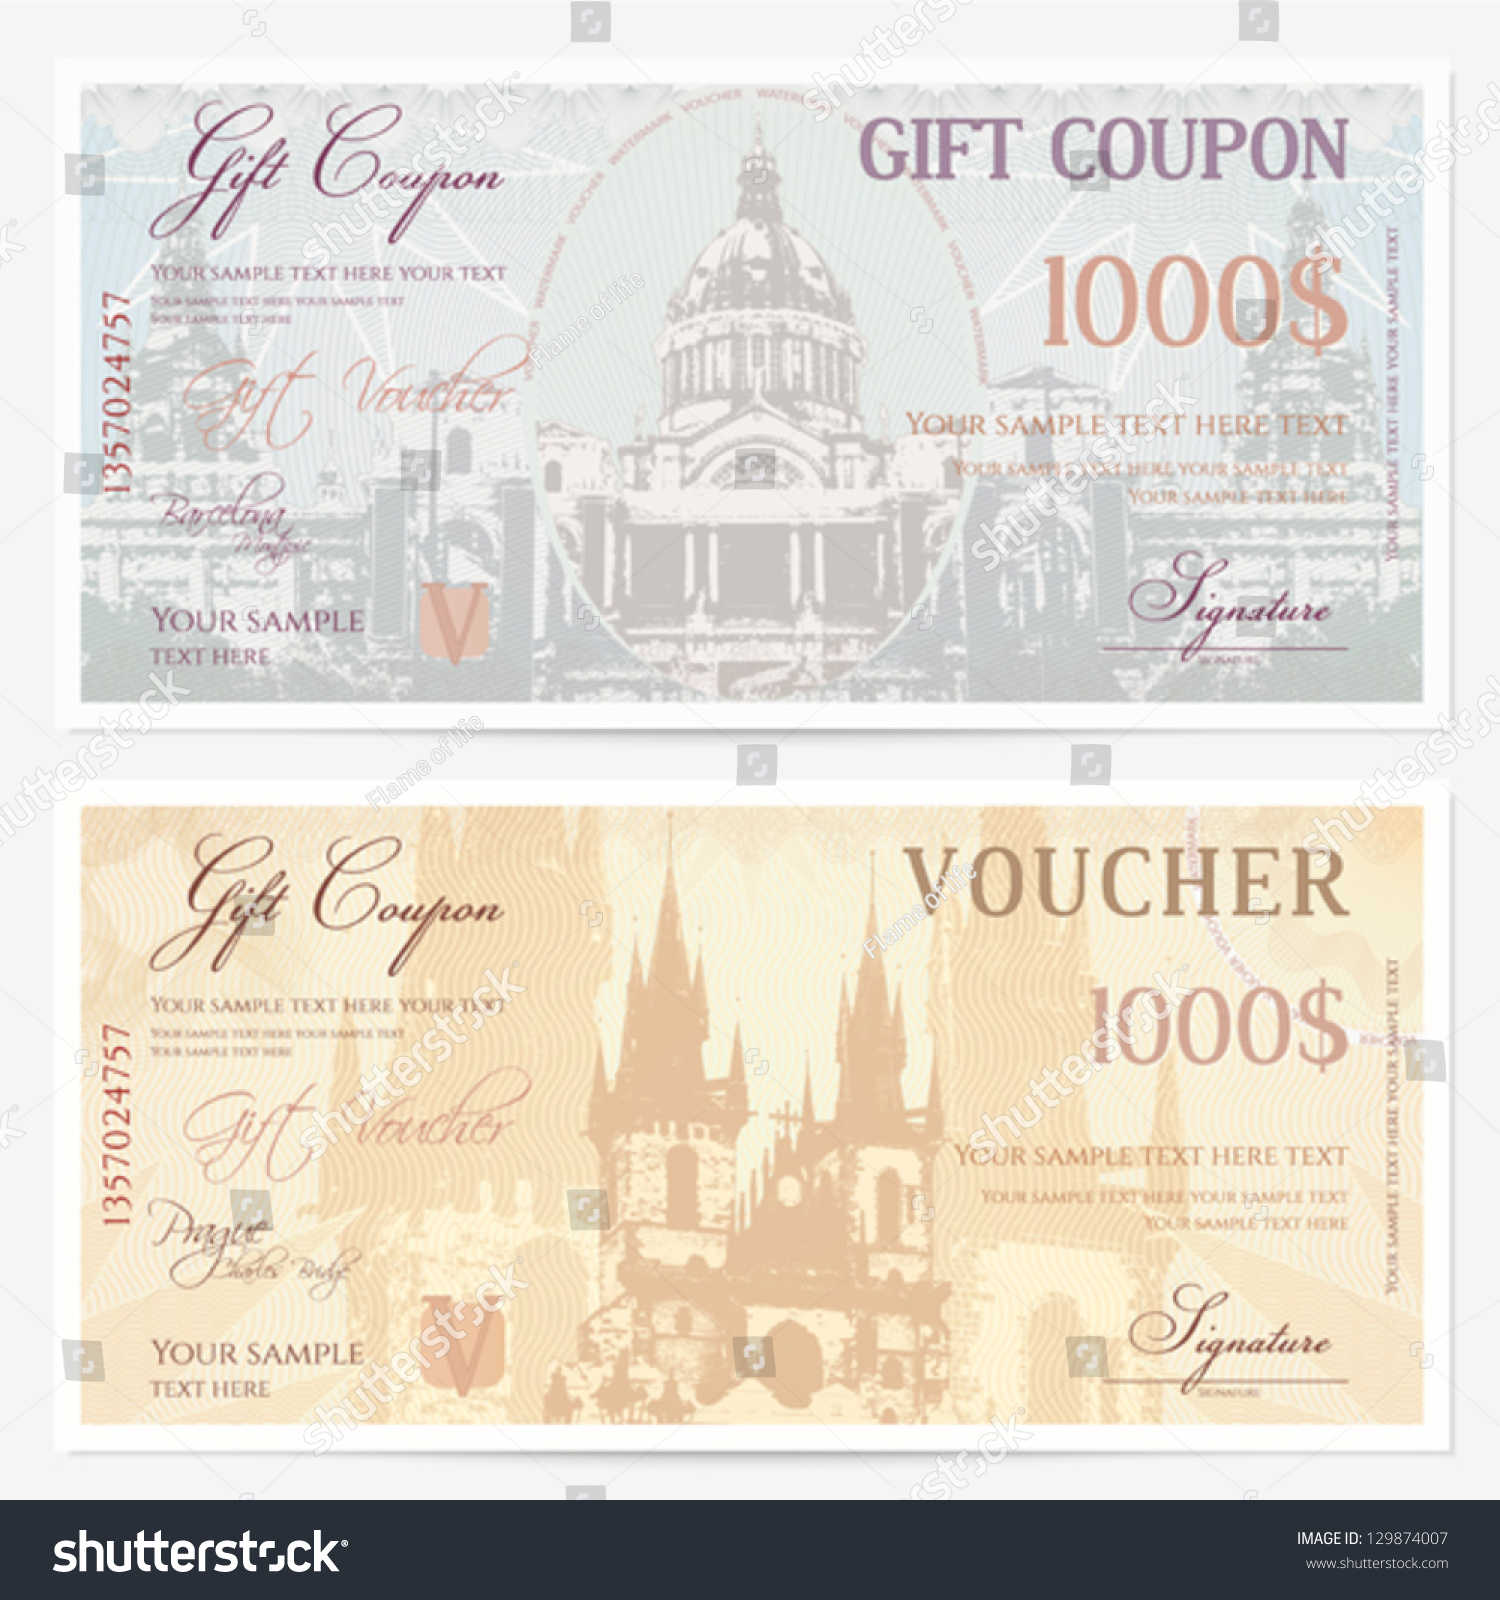 Gift Voucher Template With Guilloche Pattern (watermarks). Backgrounds With  Castell De Montjuic (